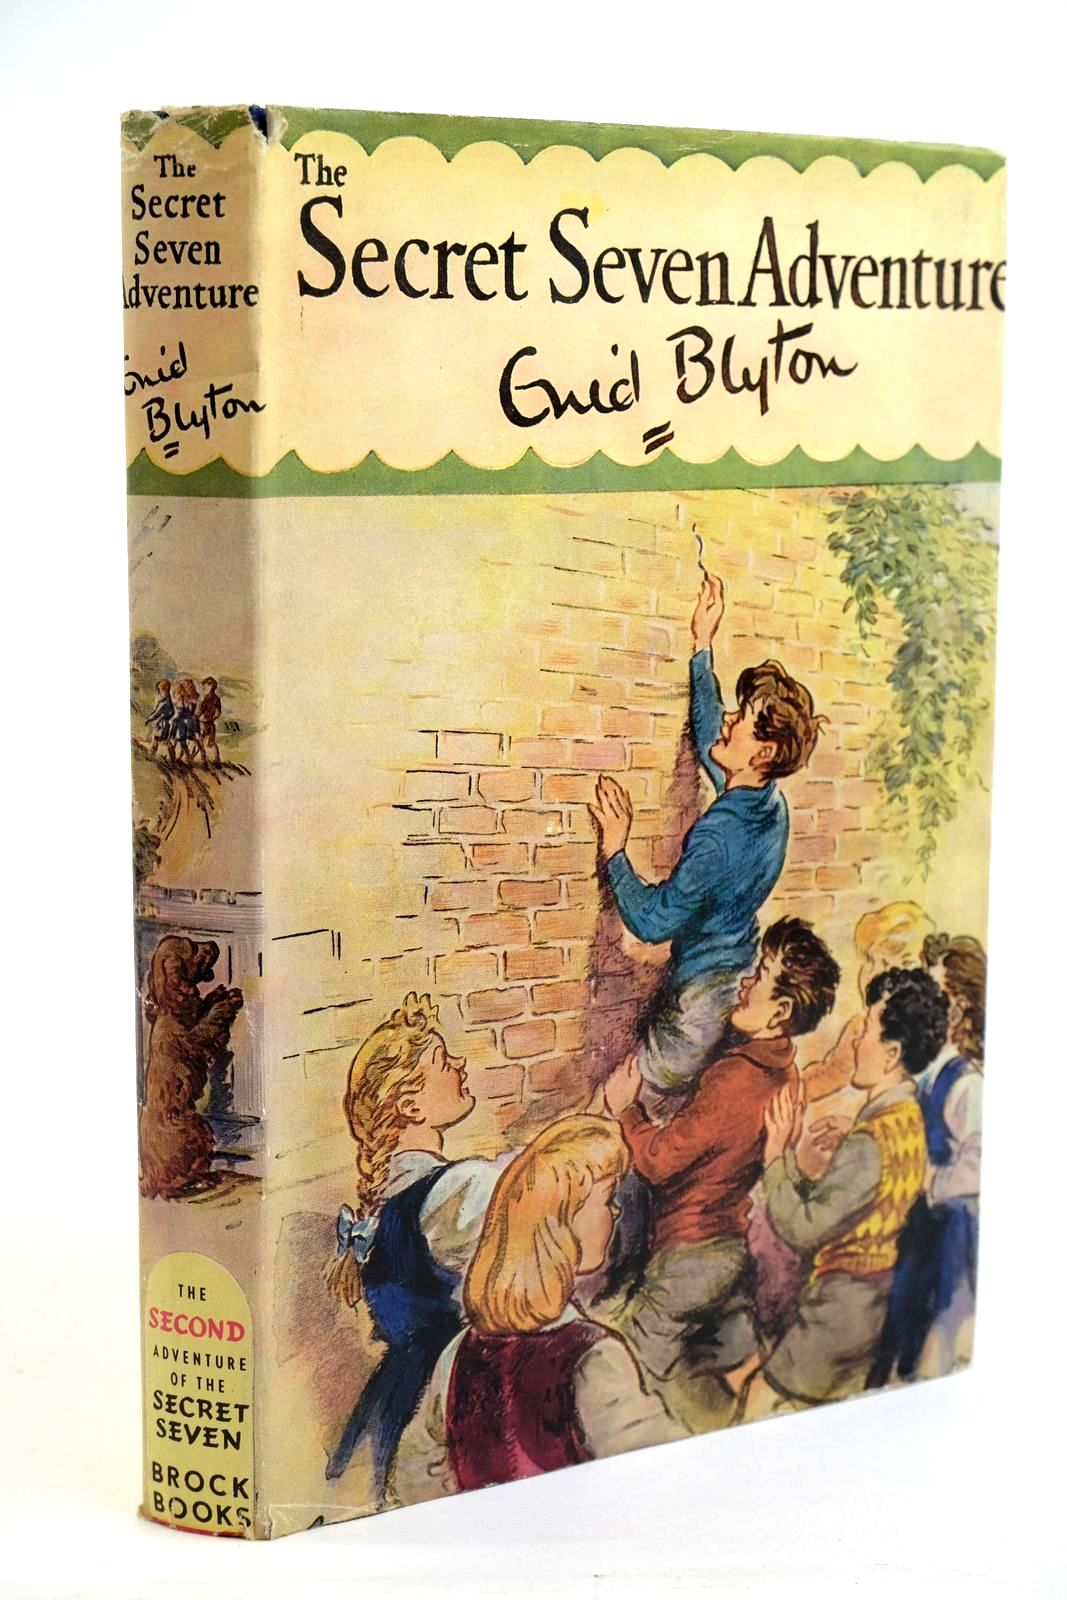 Photo of THE SECRET SEVEN ADVENTURE written by Blyton, Enid illustrated by Brook, George published by Brockhampton Press (STOCK CODE: 1321593)  for sale by Stella & Rose's Books